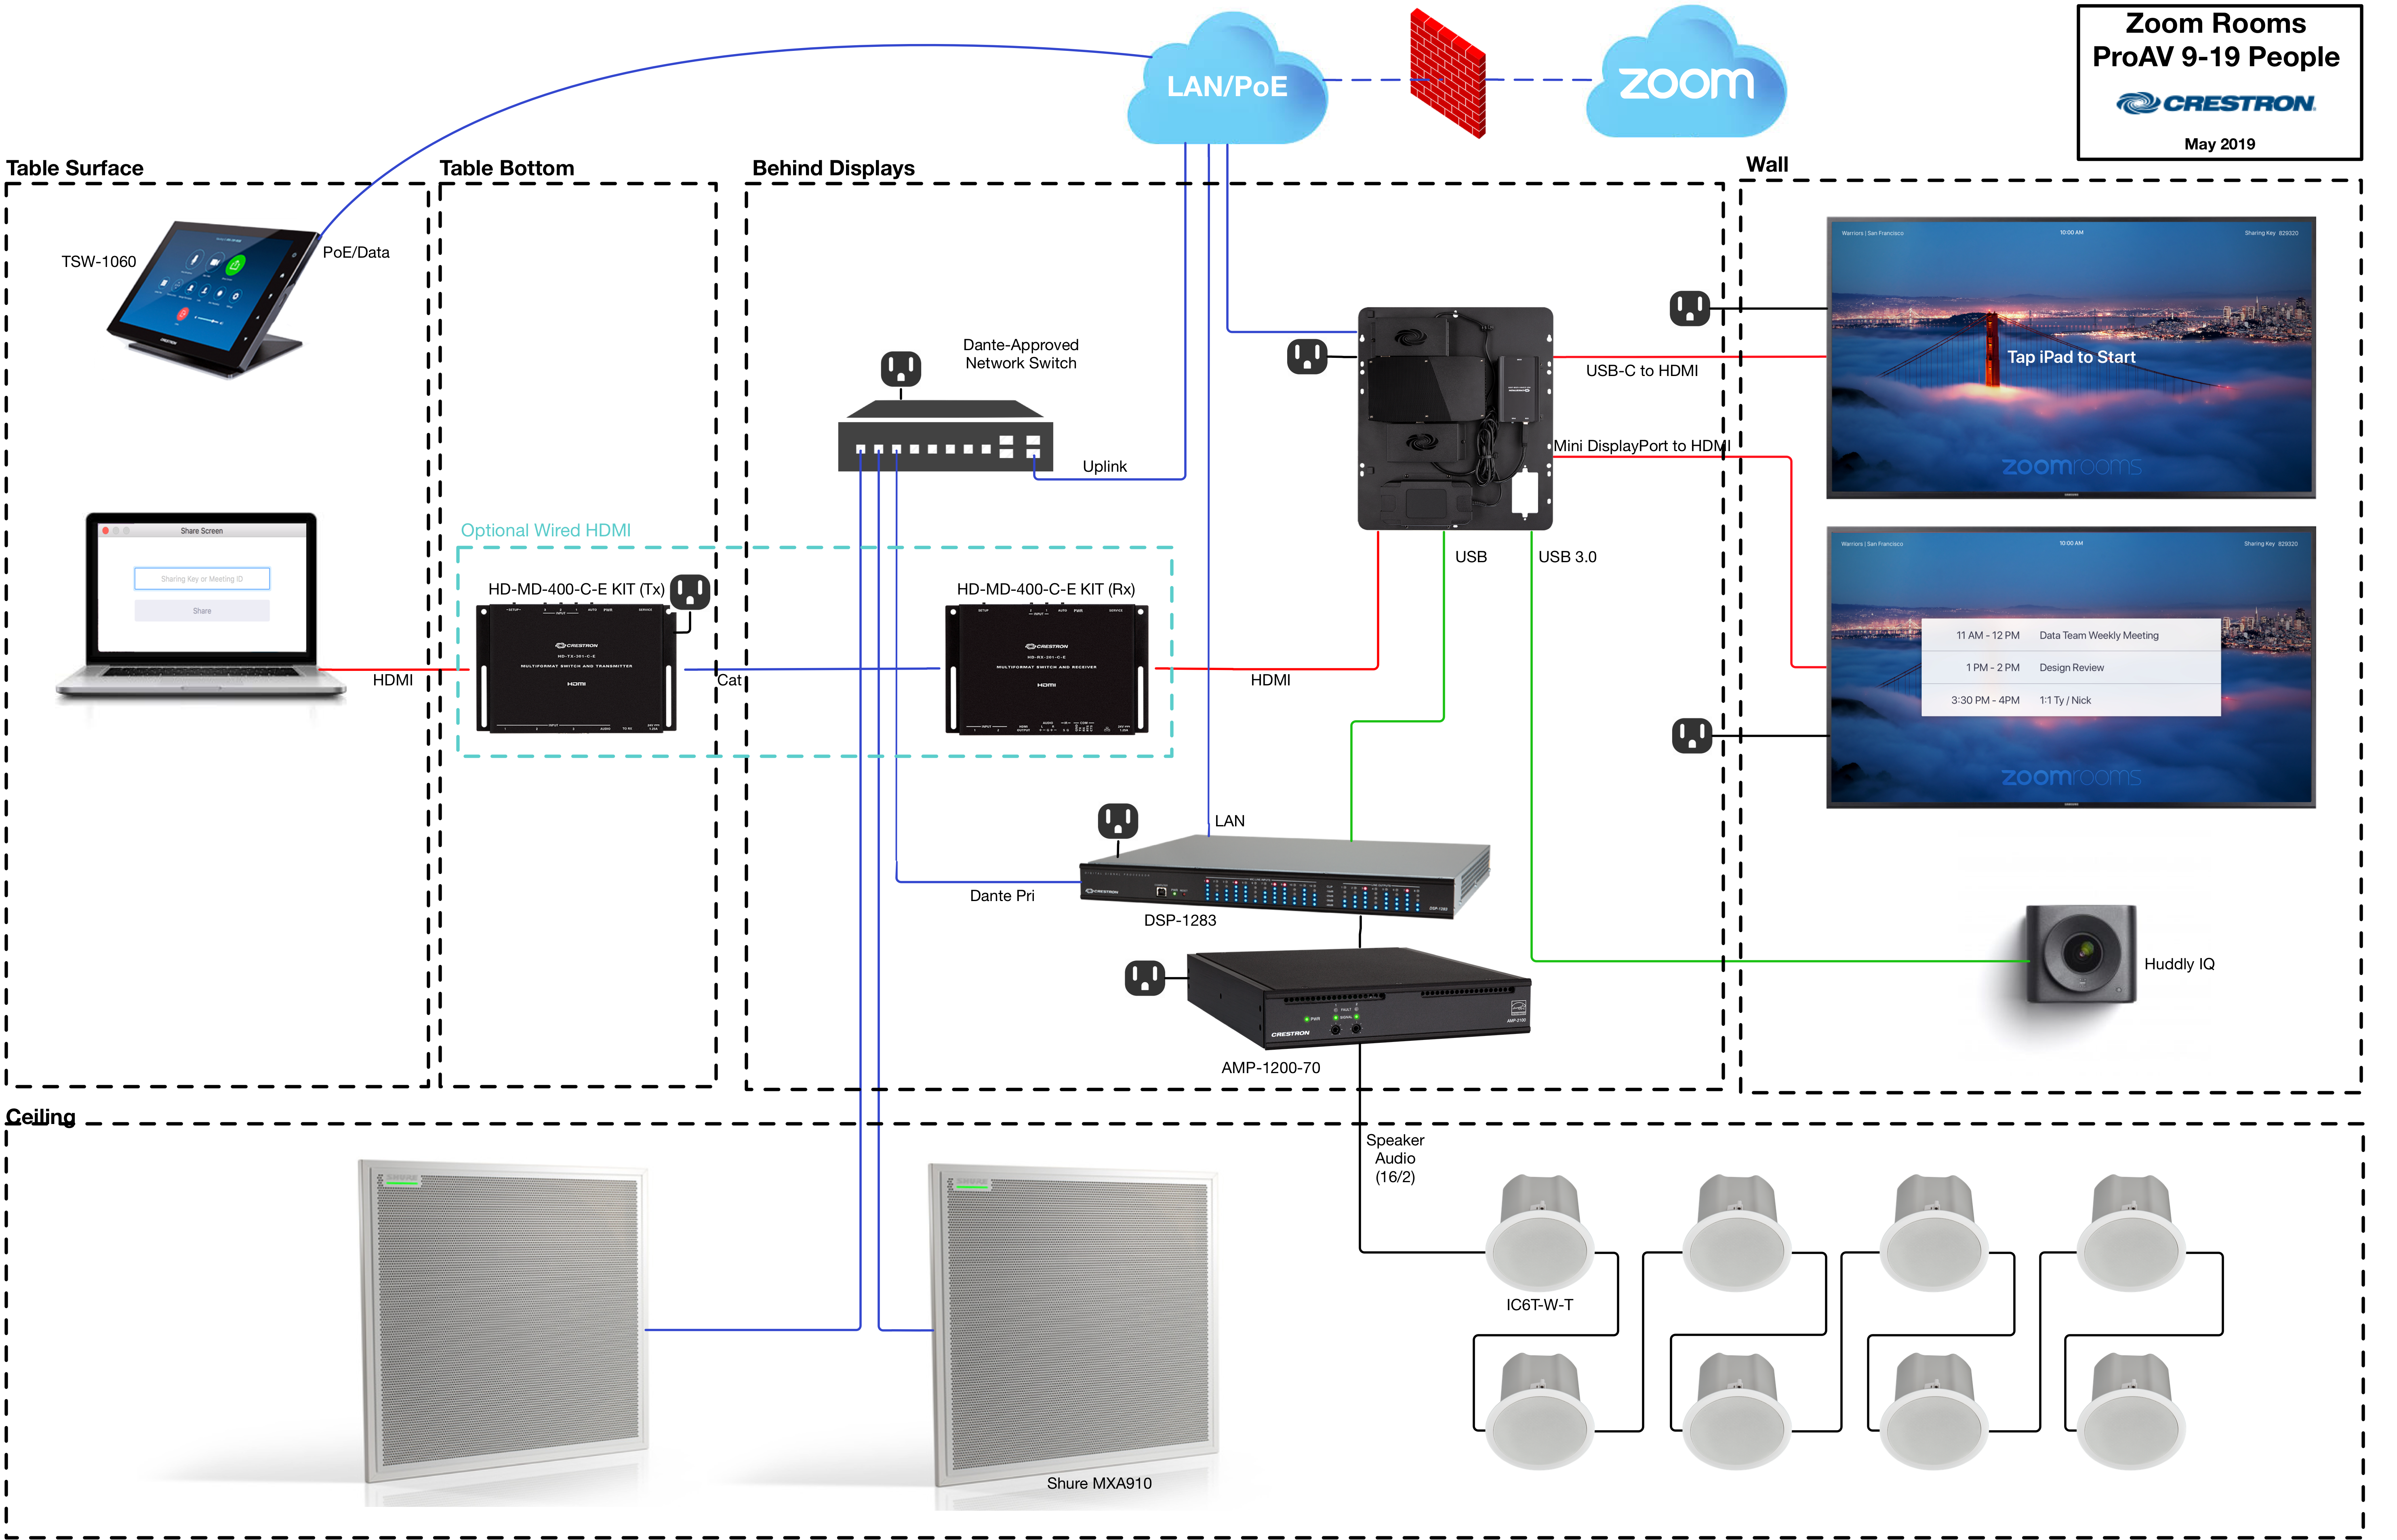 Crestron_-_Pictorial_Schematic_-_Zoom_Rooms_ProAV__9-19_People_.png